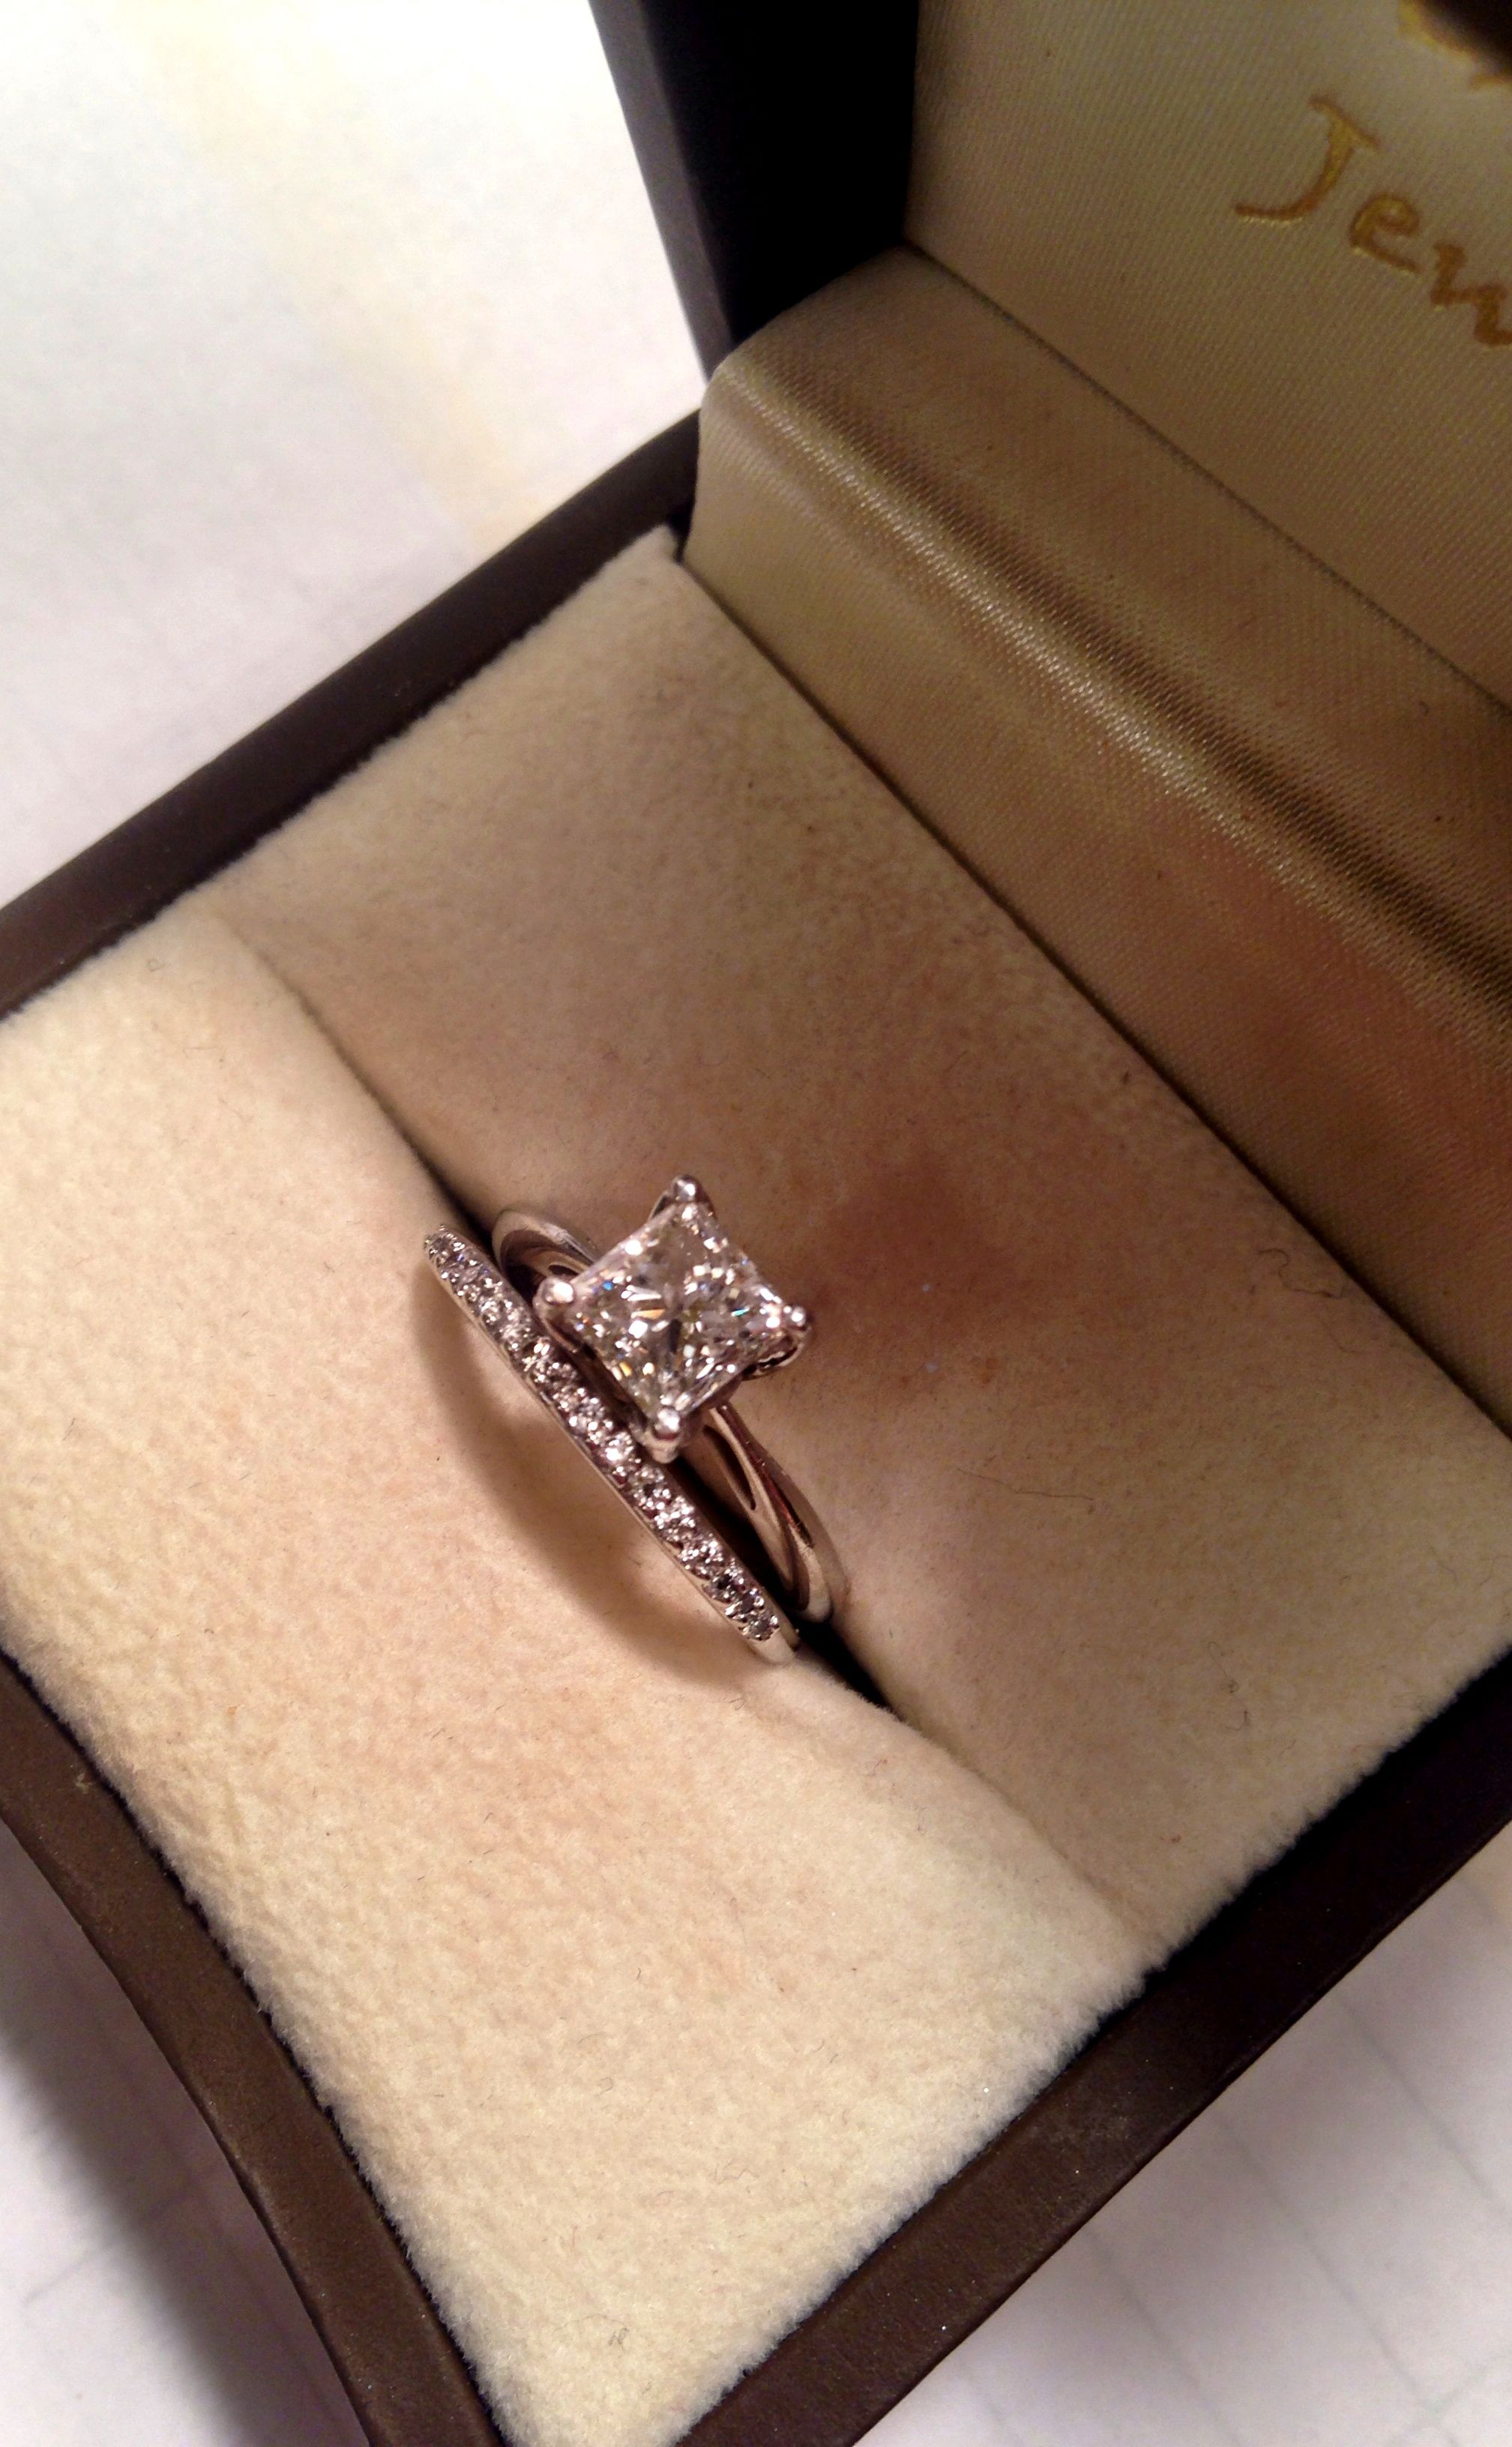 Solitaire engagement ring princess cut diamond wedding band